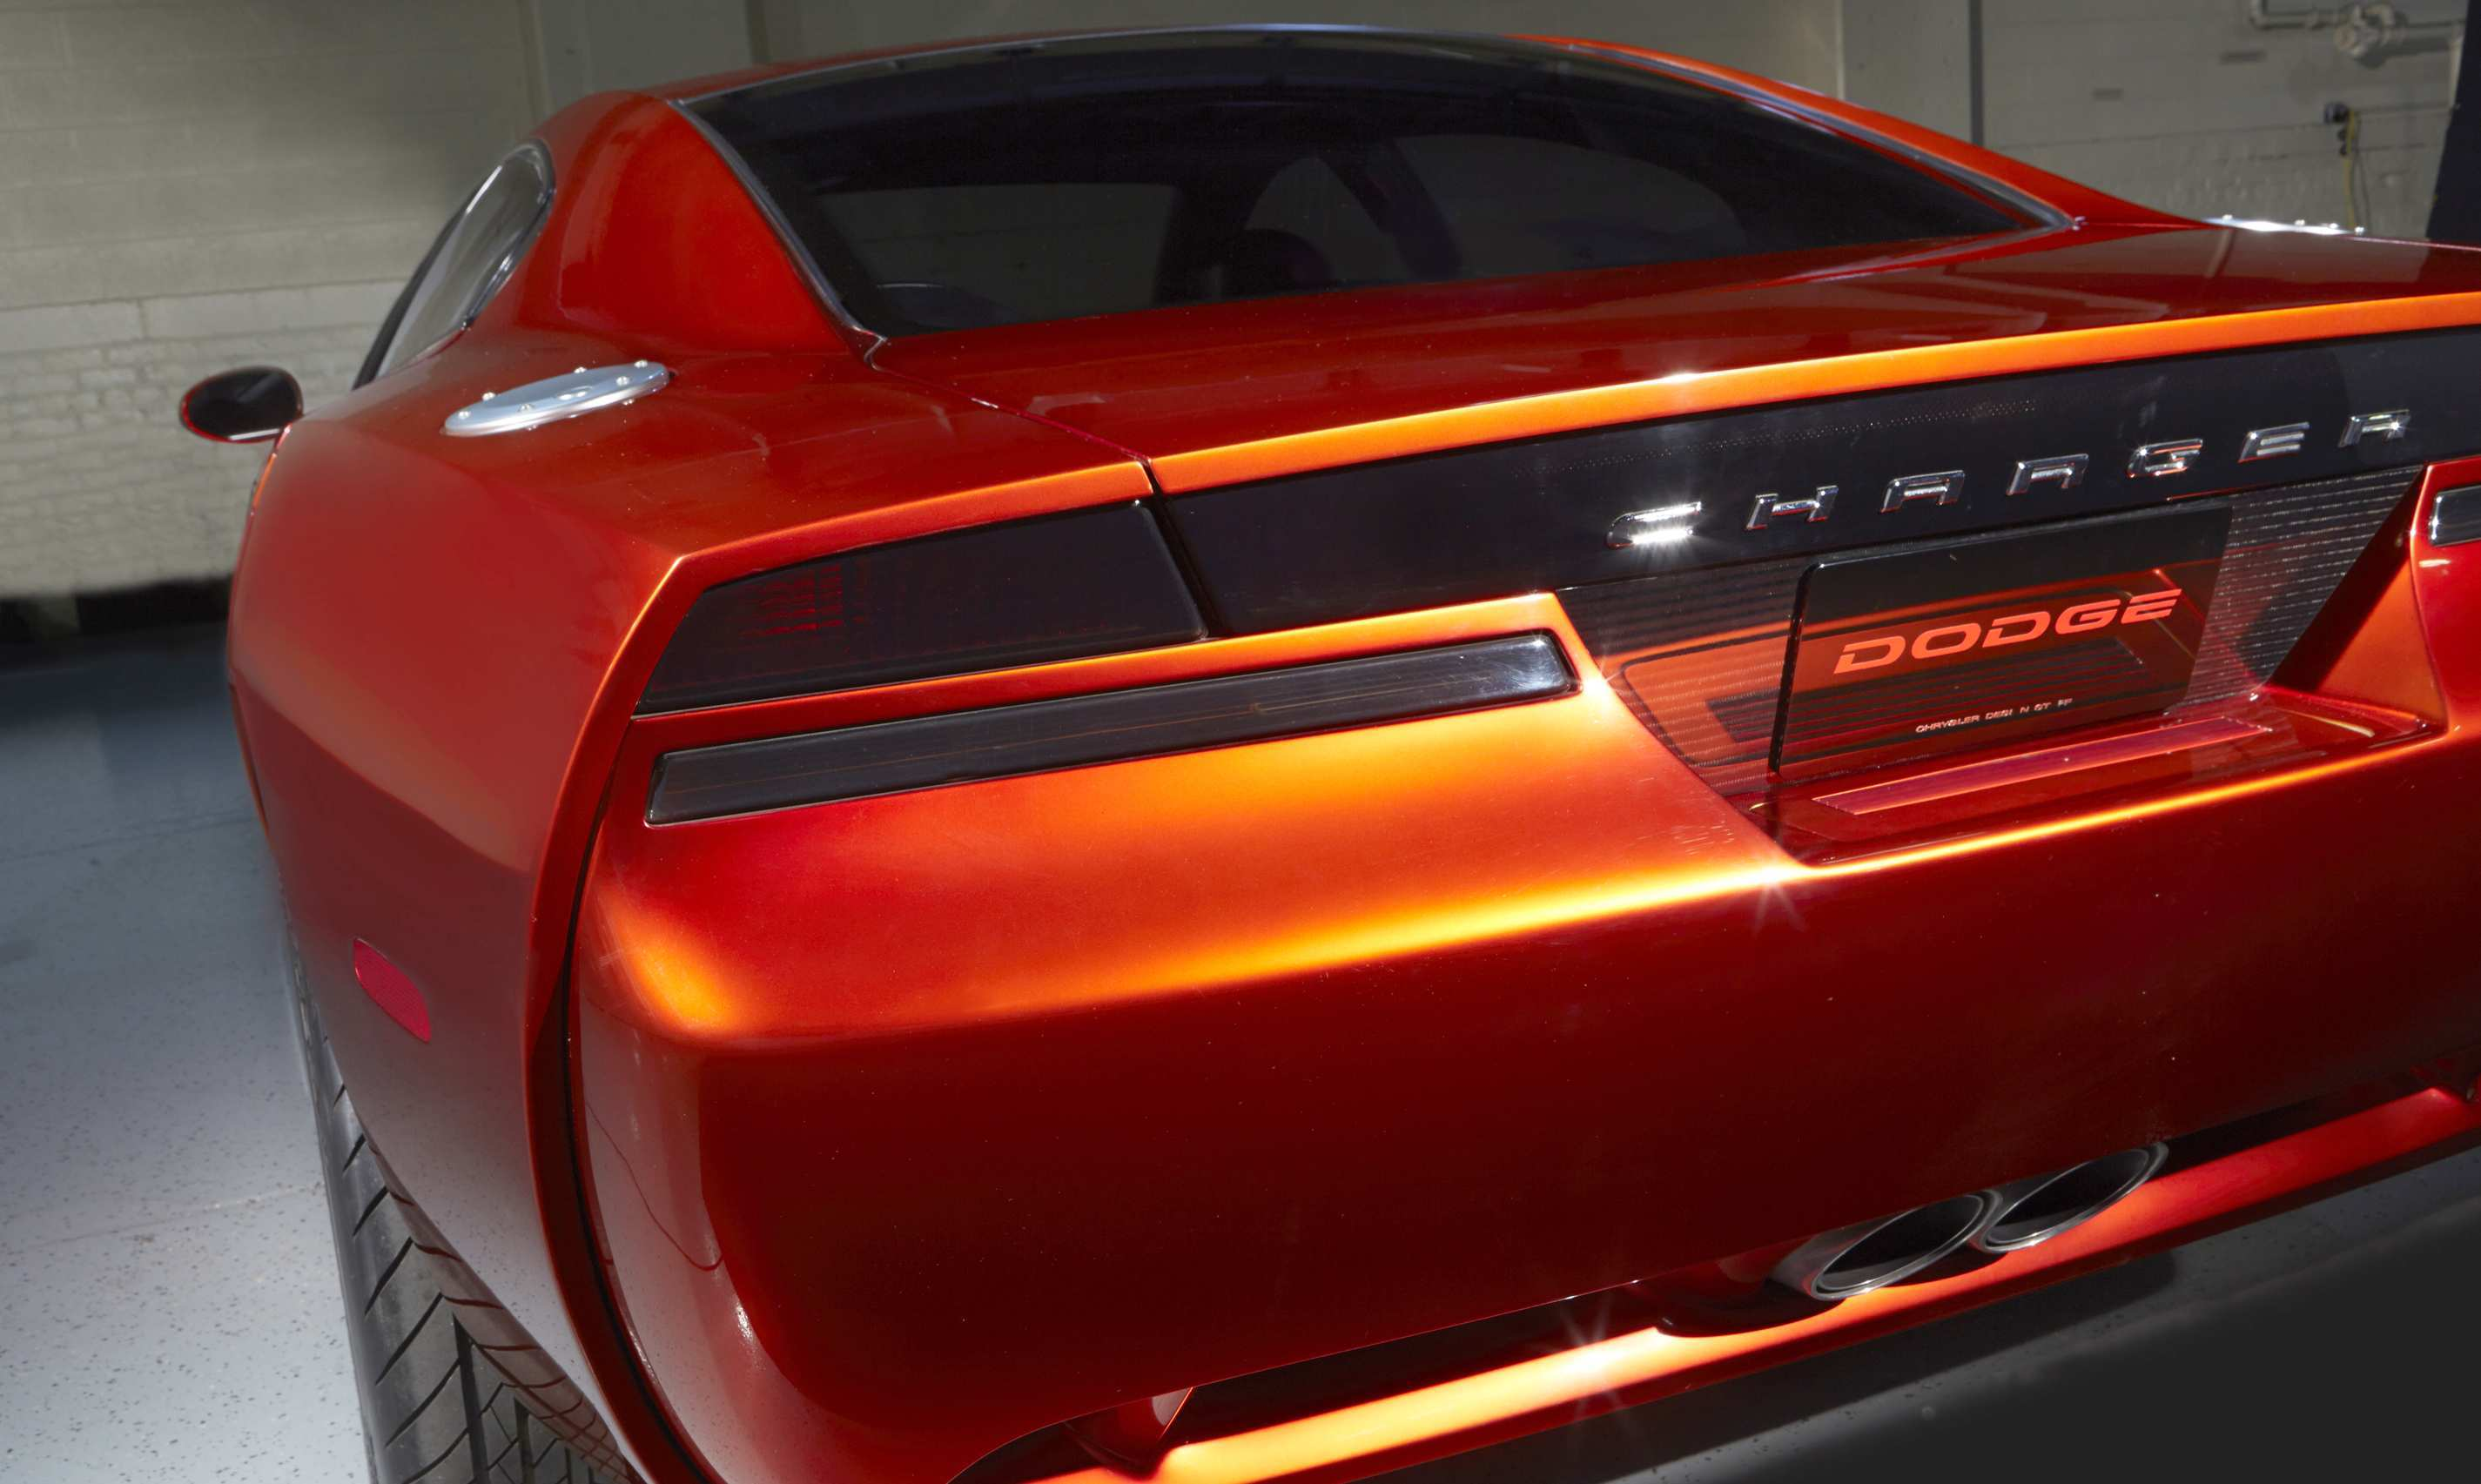 18 Gallery of When Is The 2020 Dodge Charger Coming Out Redesign by When Is The 2020 Dodge Charger Coming Out